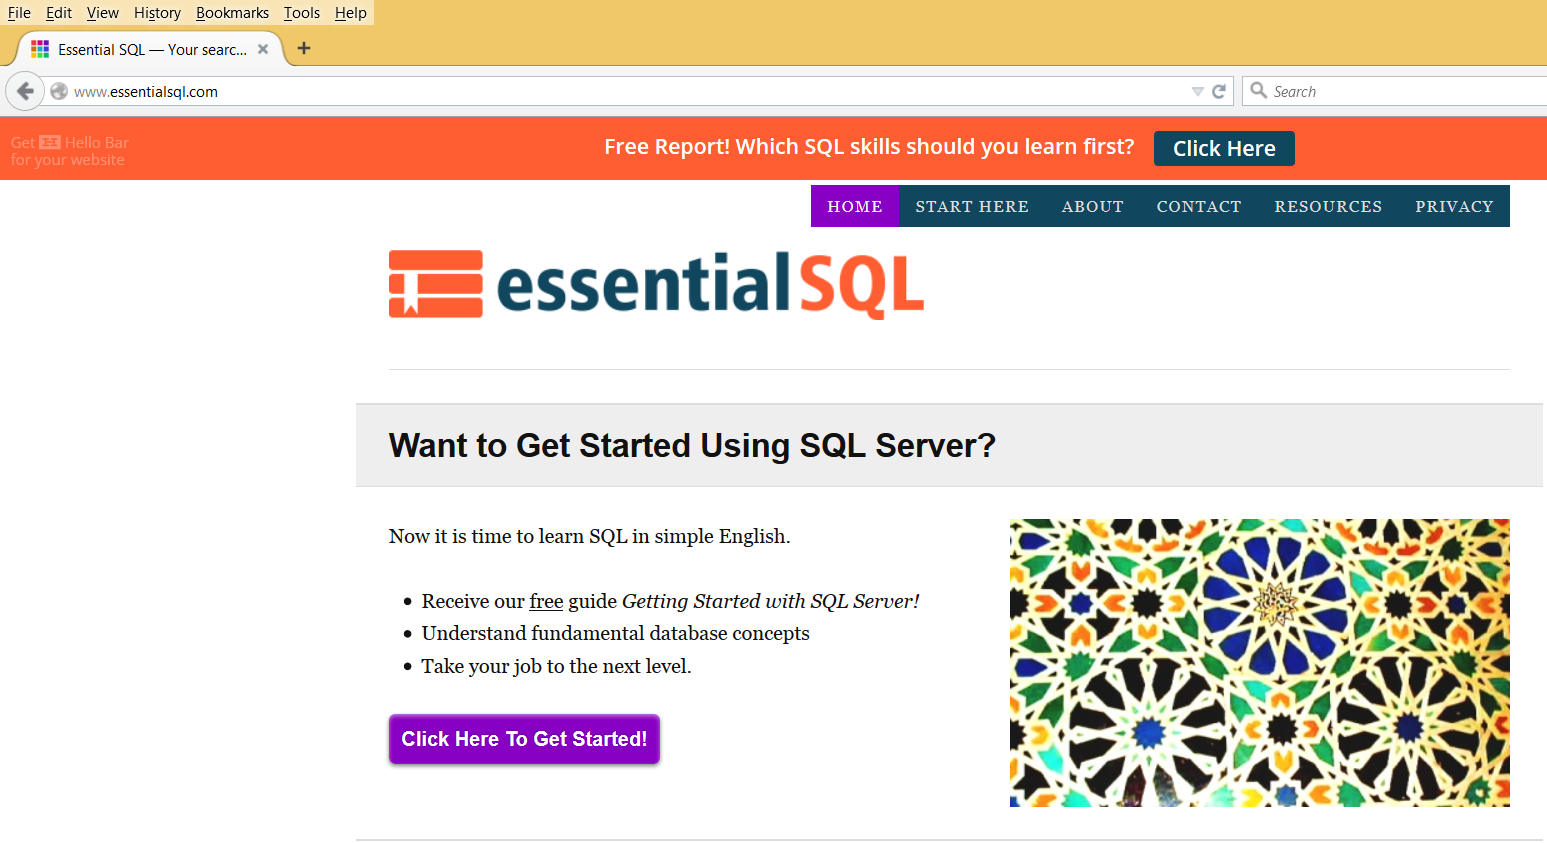 Everything About Programming: 5 Websites to Learn SQL Online